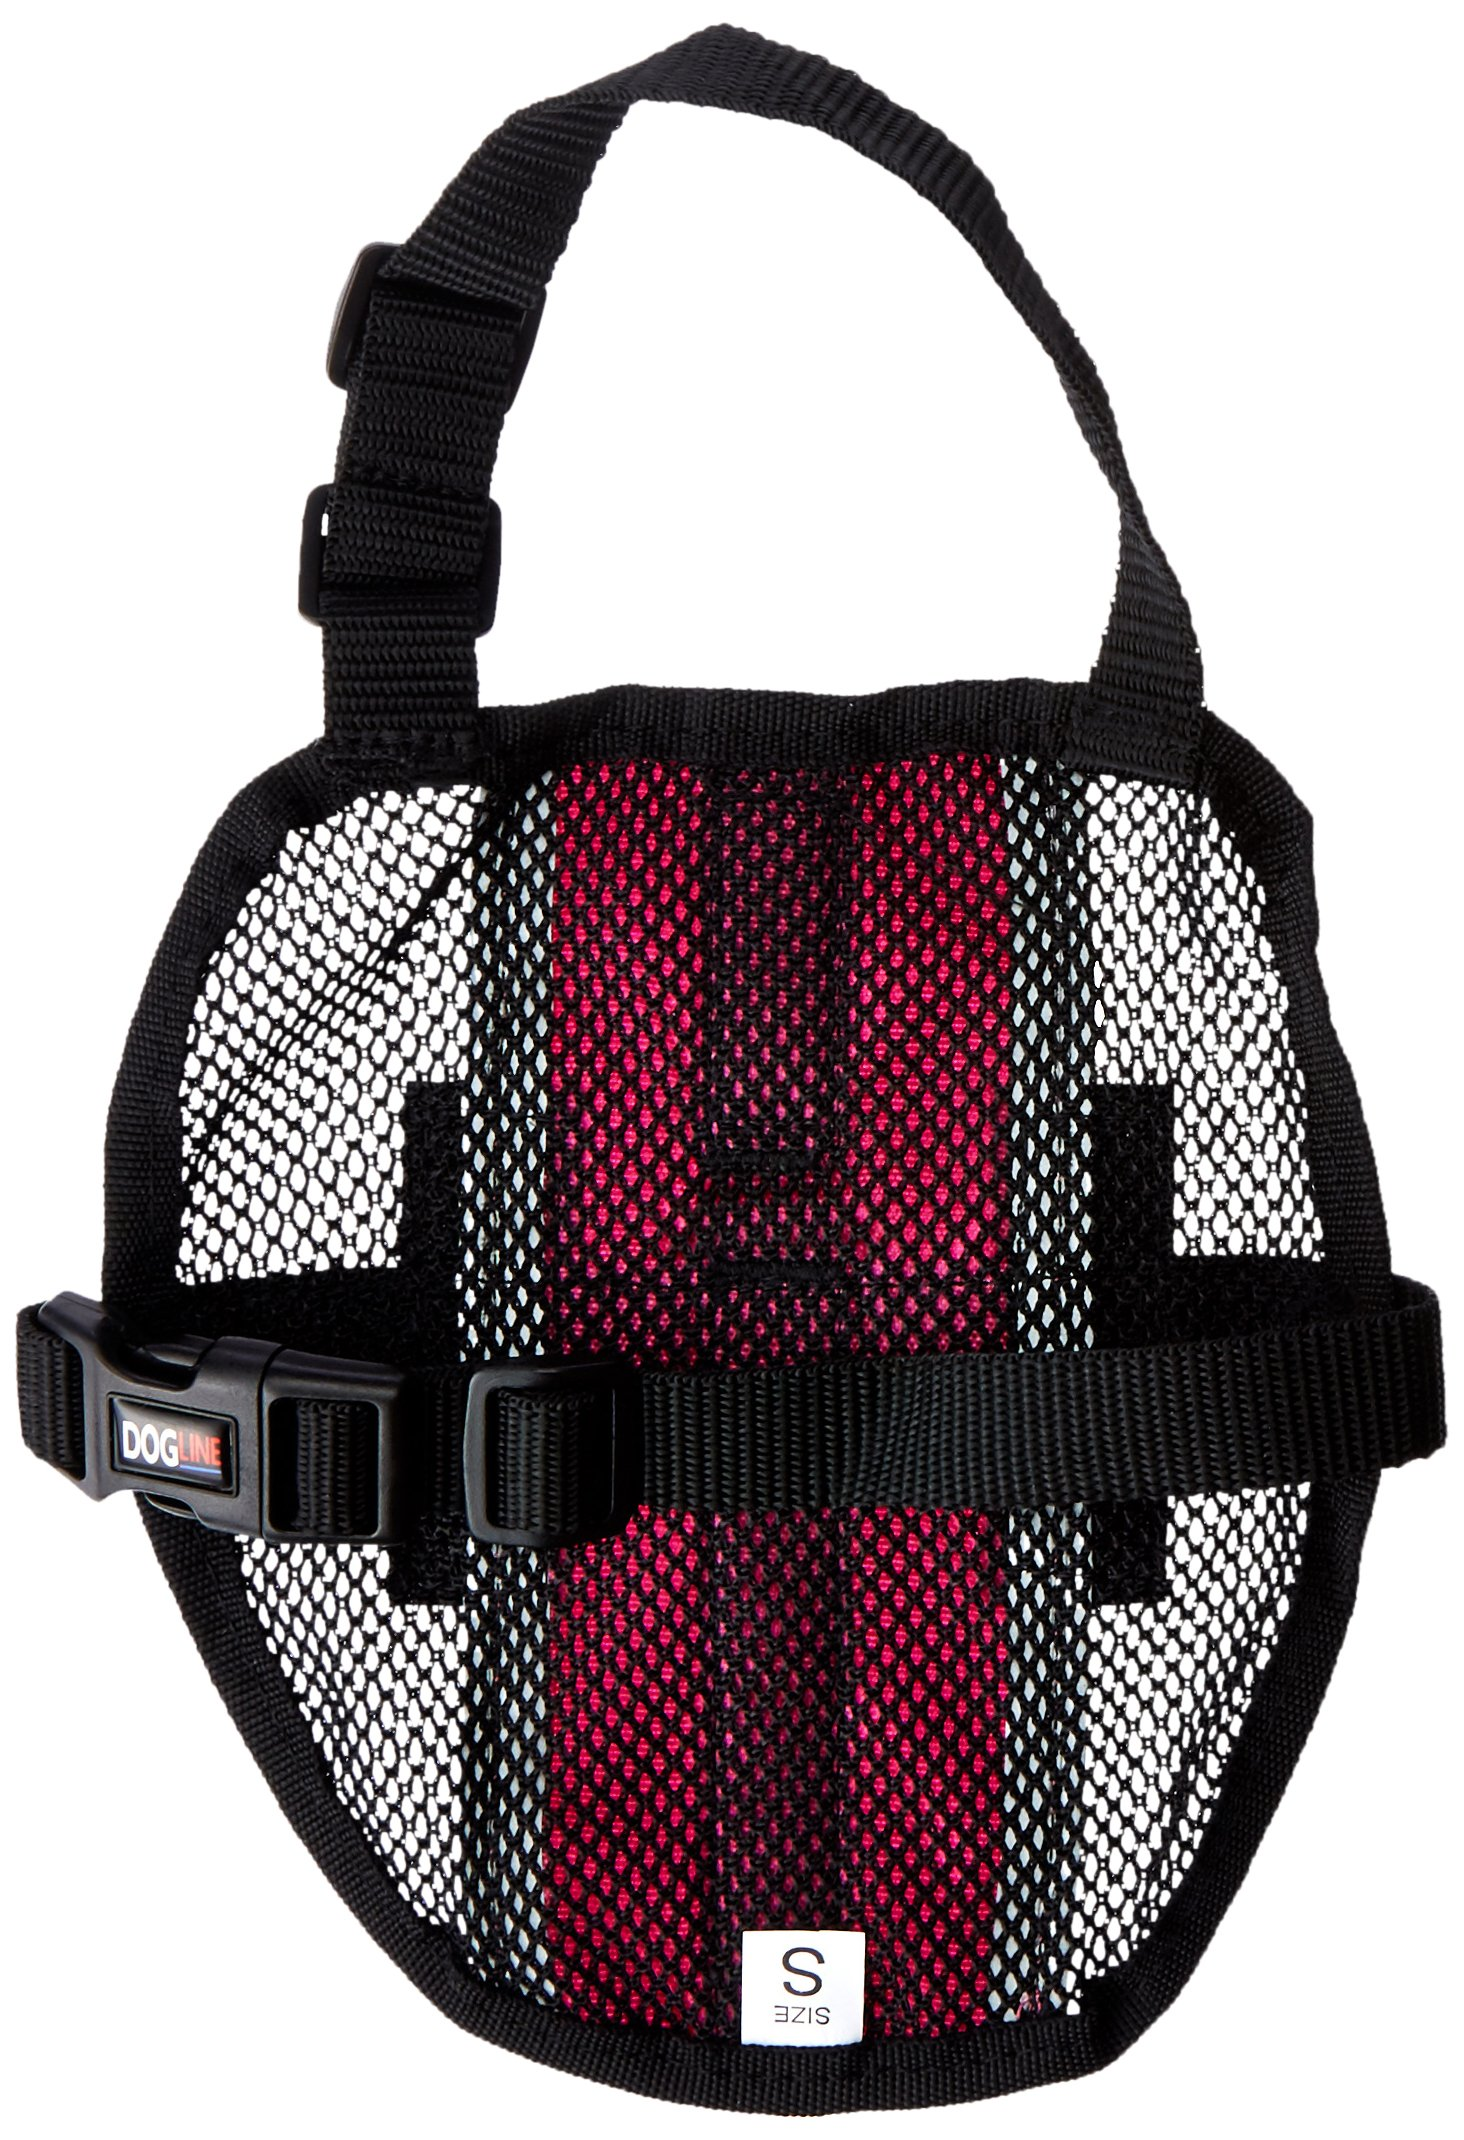 Dogline MaxAire Multi-Purpose Mesh Vest for Dogs and 2 Removable Emotional Support Patches, Small, Pink by Dogline (Image #2)